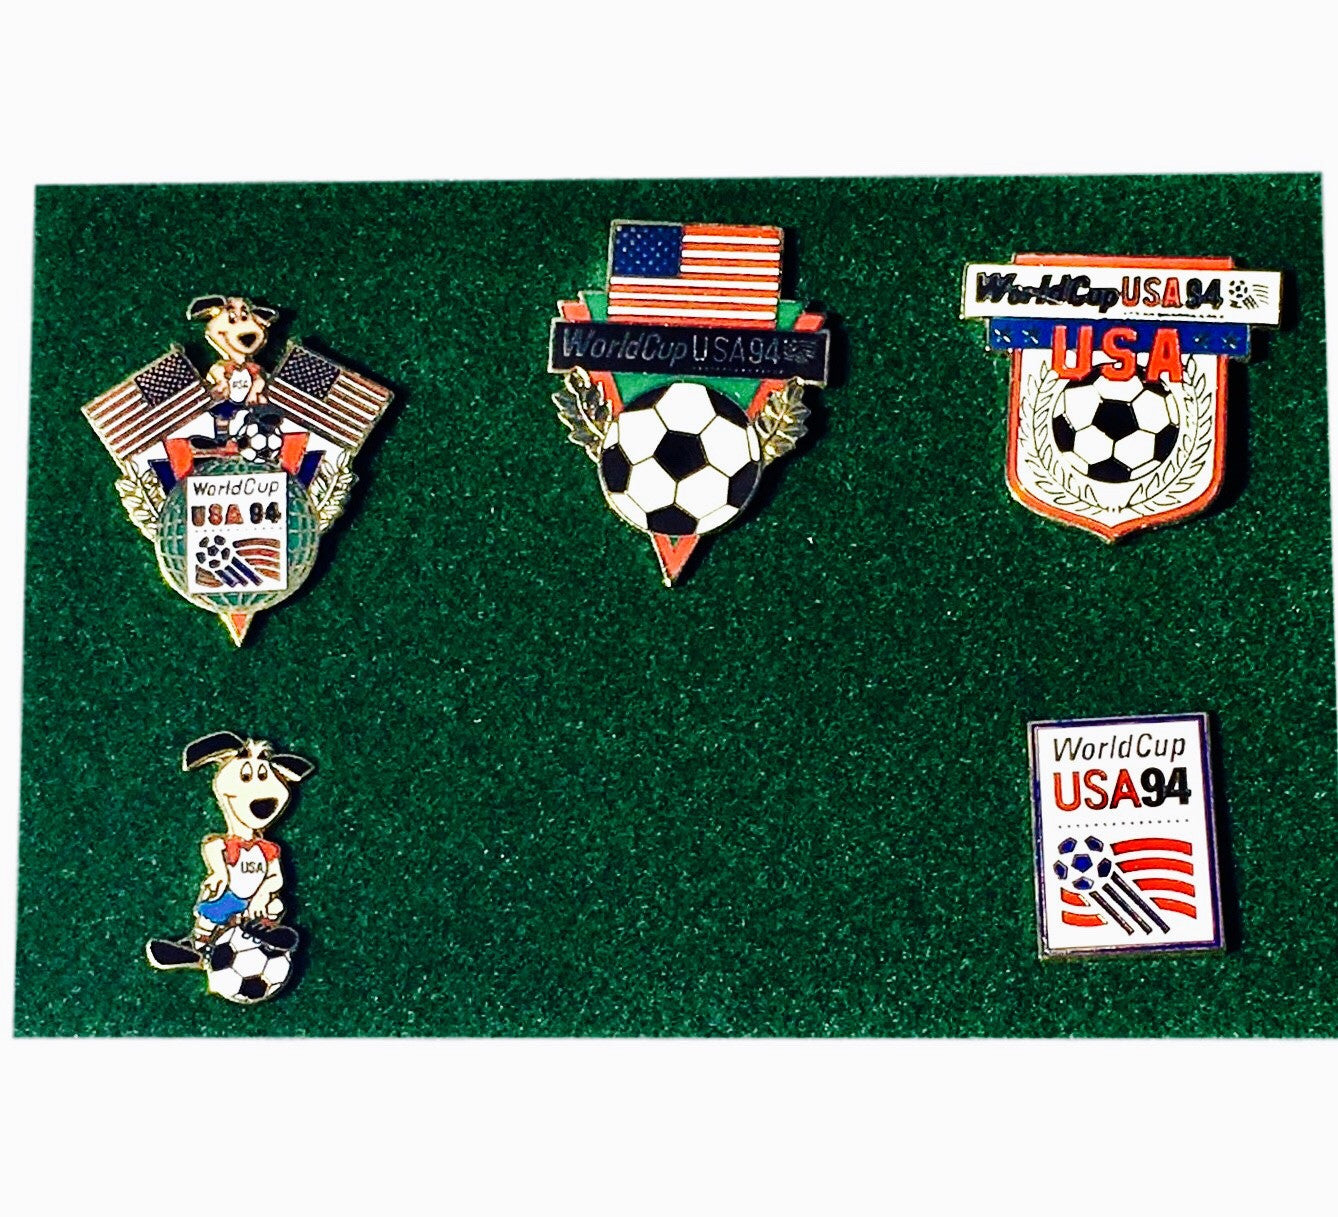 1994 World Cup USA Pin Set - And Still